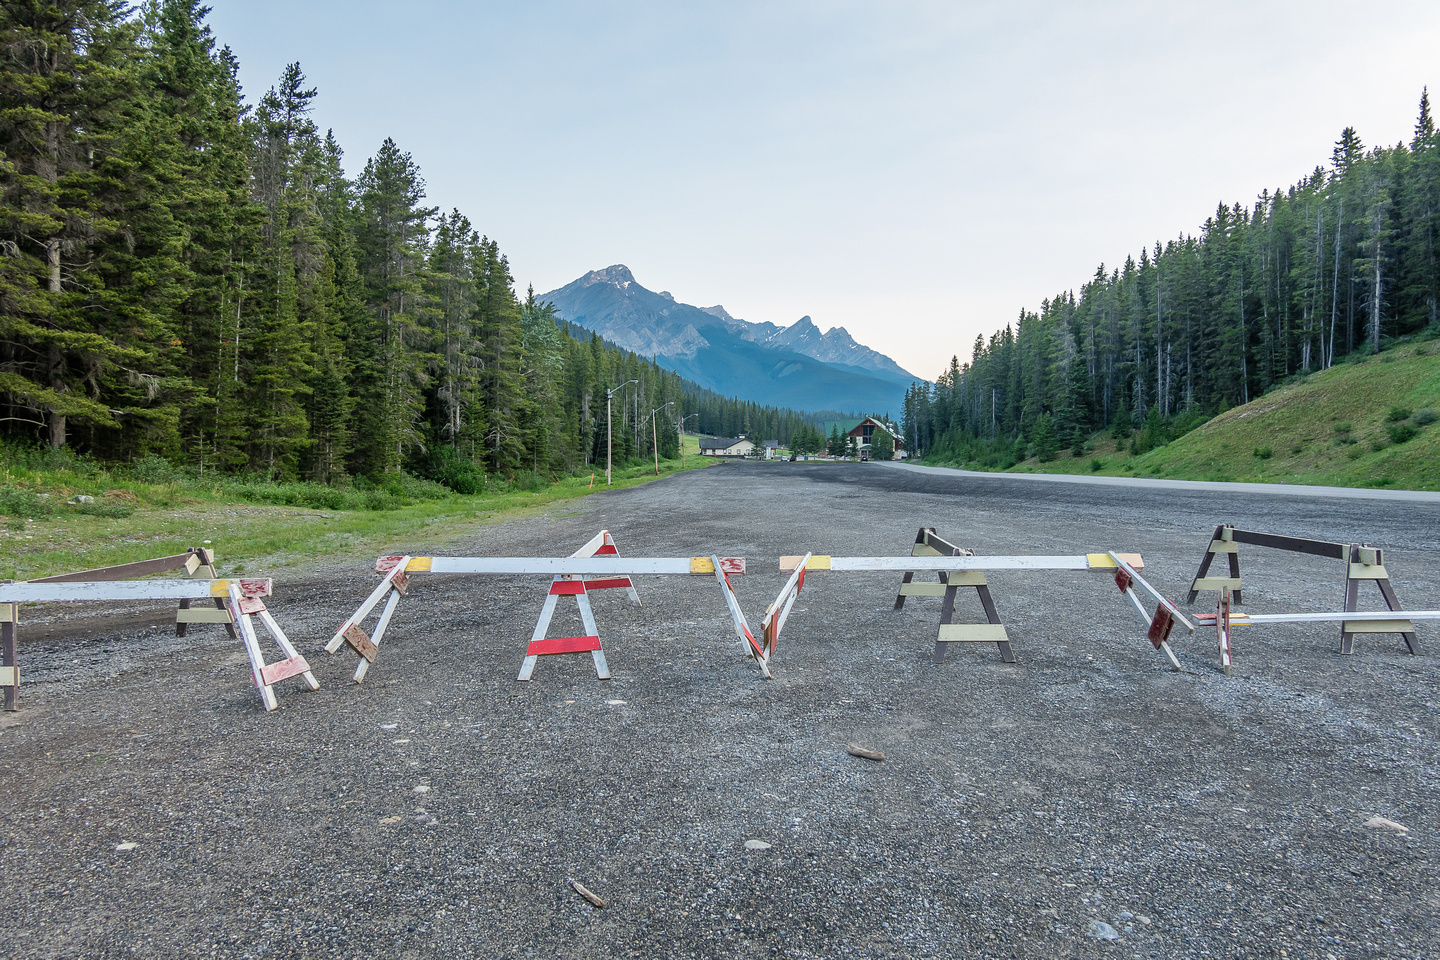 For some reason the Norquay ski resort feels we should add a few hundred meters of distance...